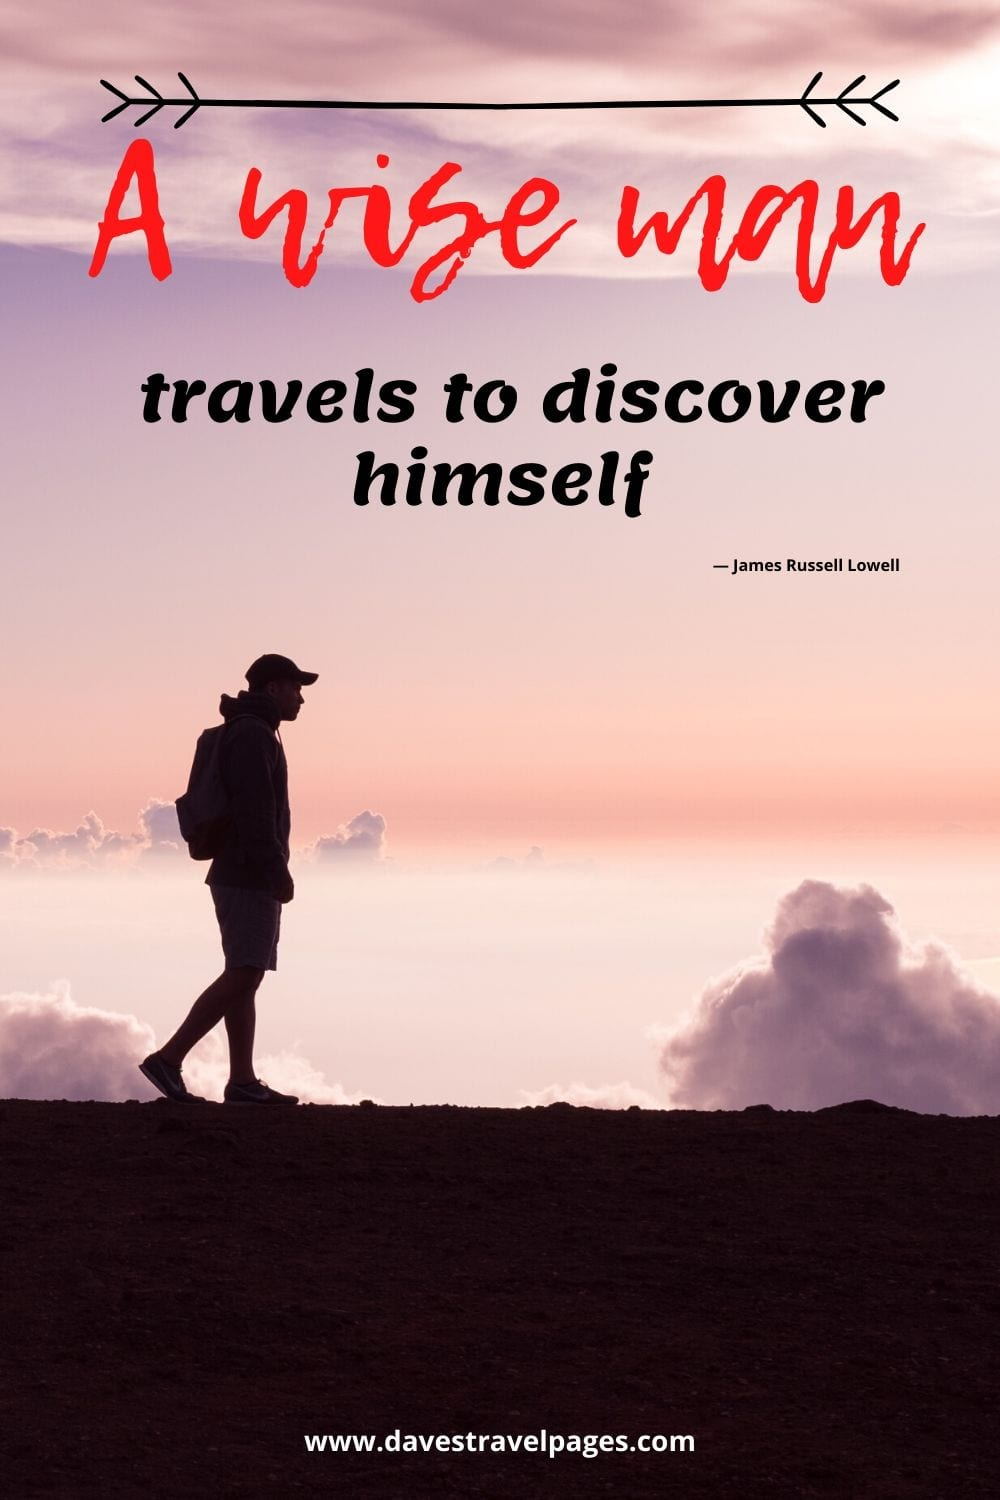 """Travel and discovery quotes: """"A wise man travels to discover himself."""" — James Russell Lowell"""